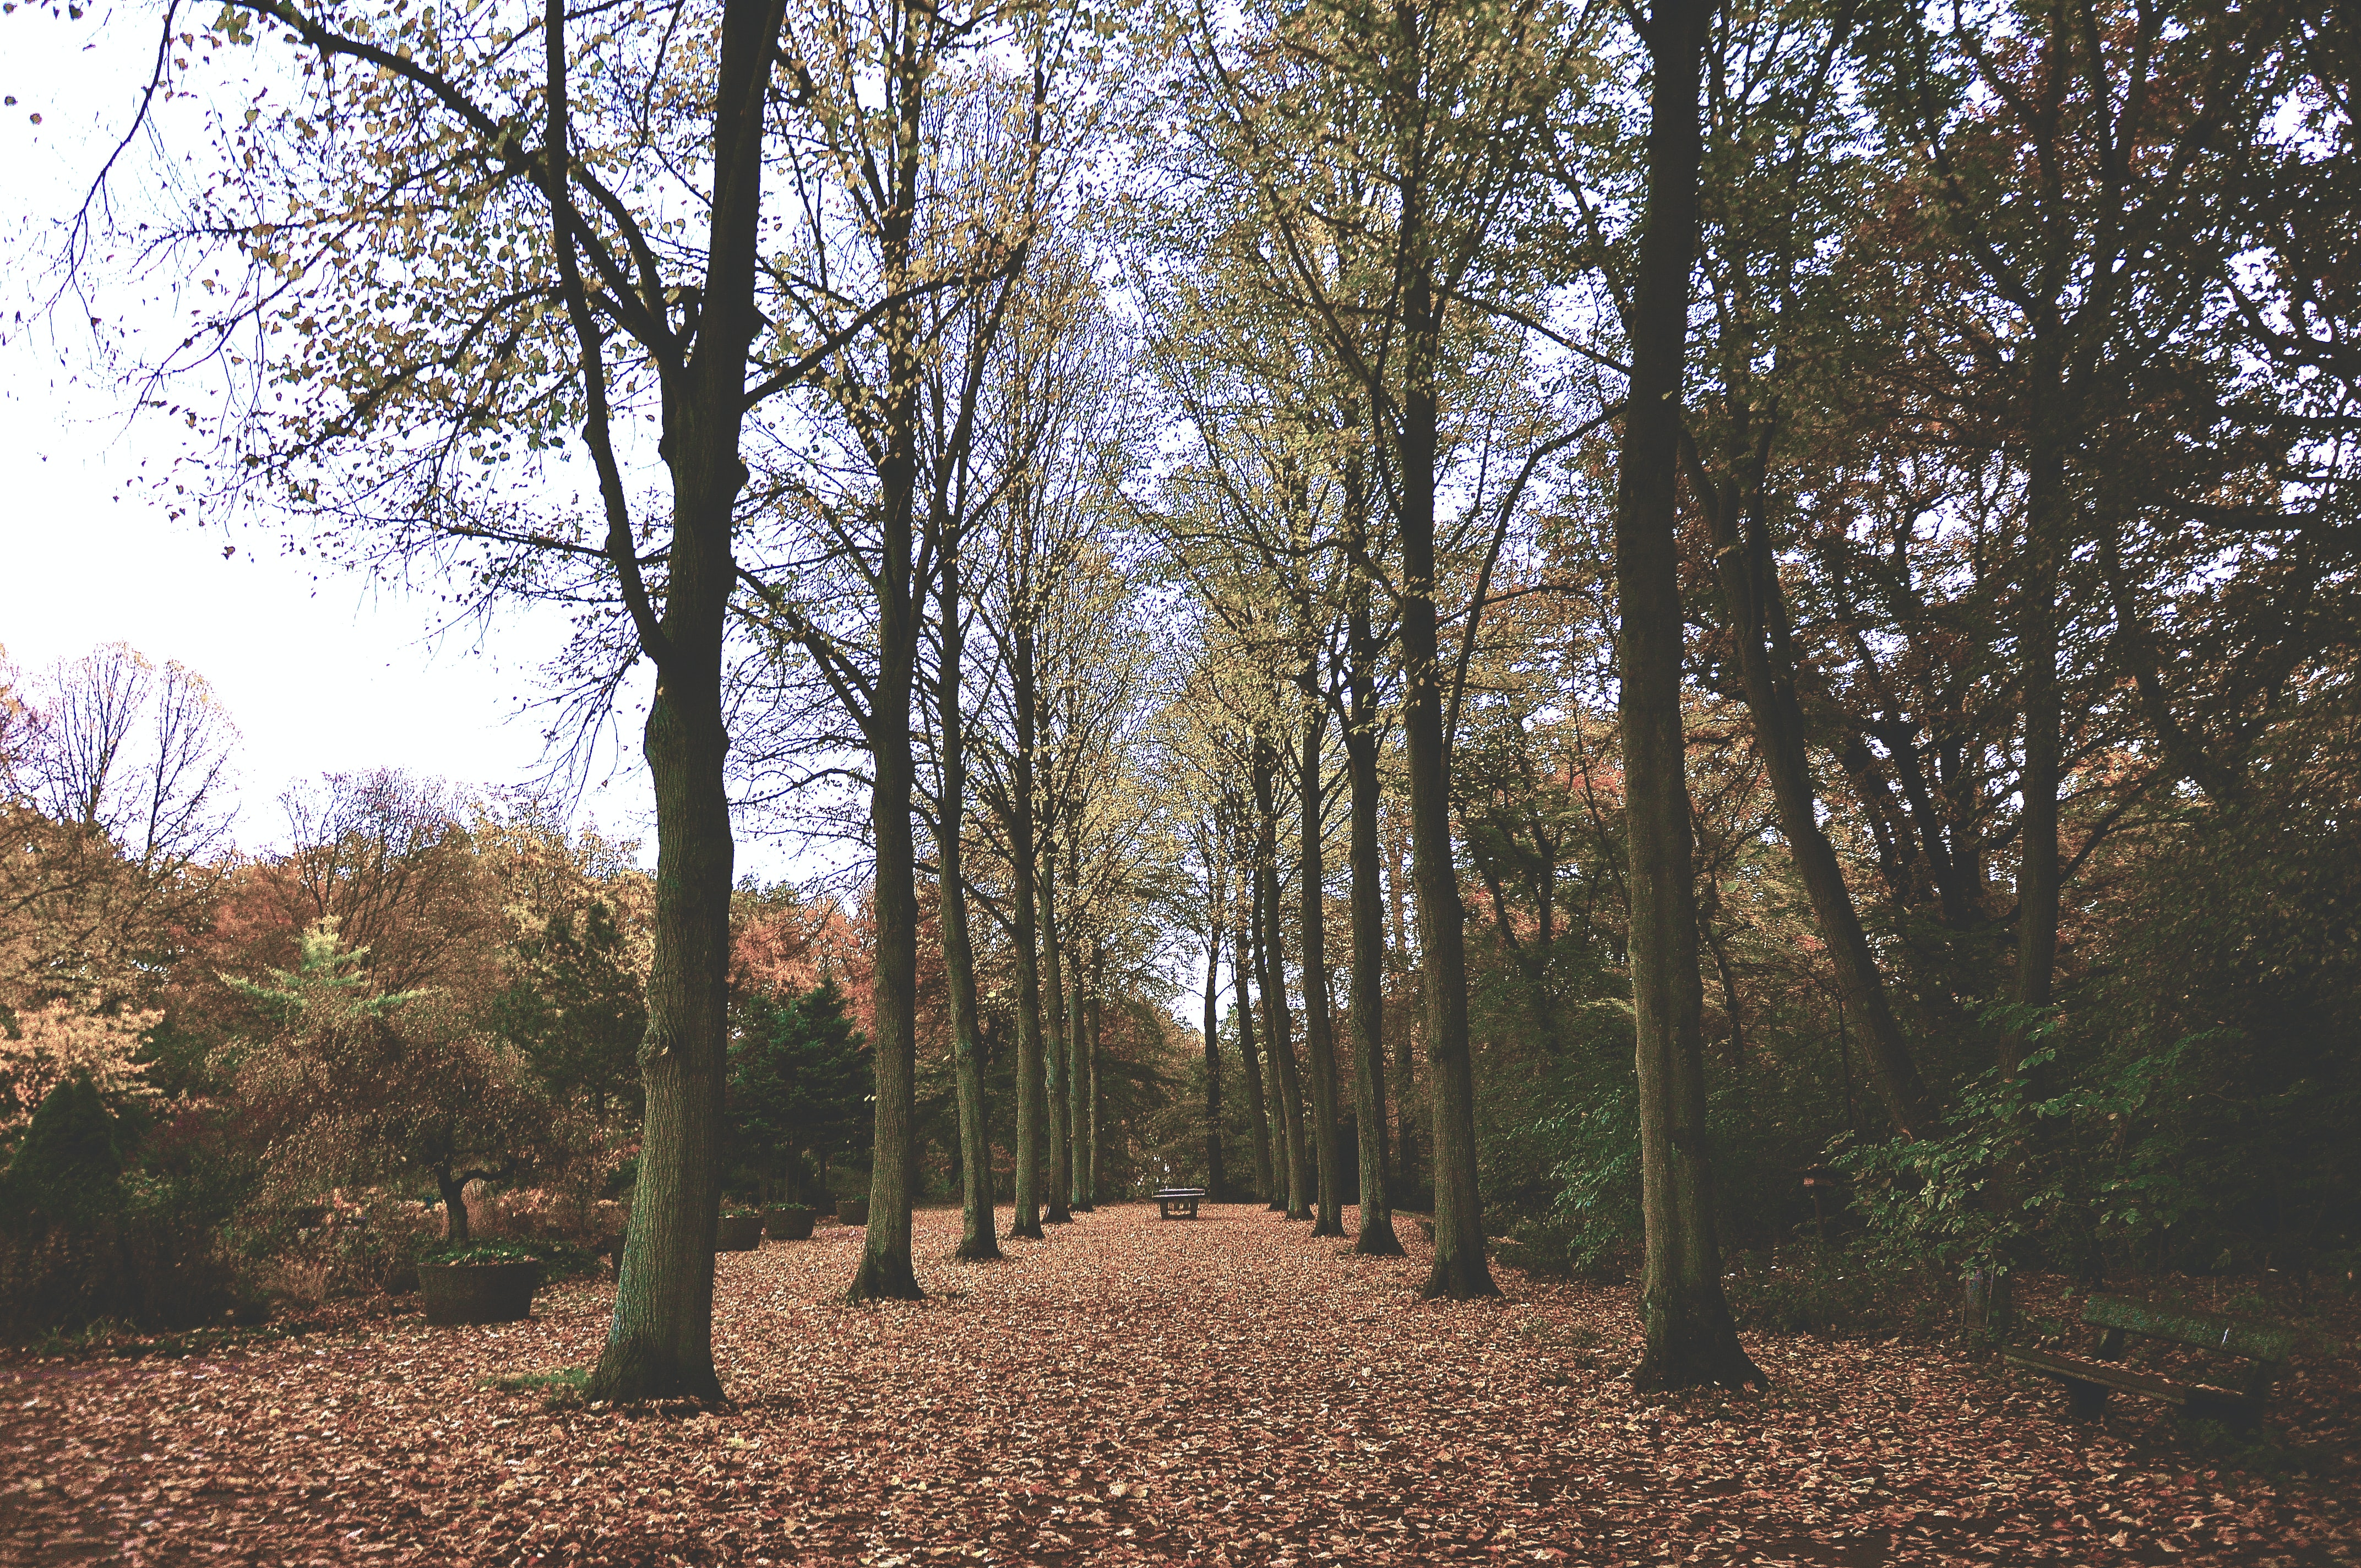 A leaf-covered park pathway lined with nearly bare trees